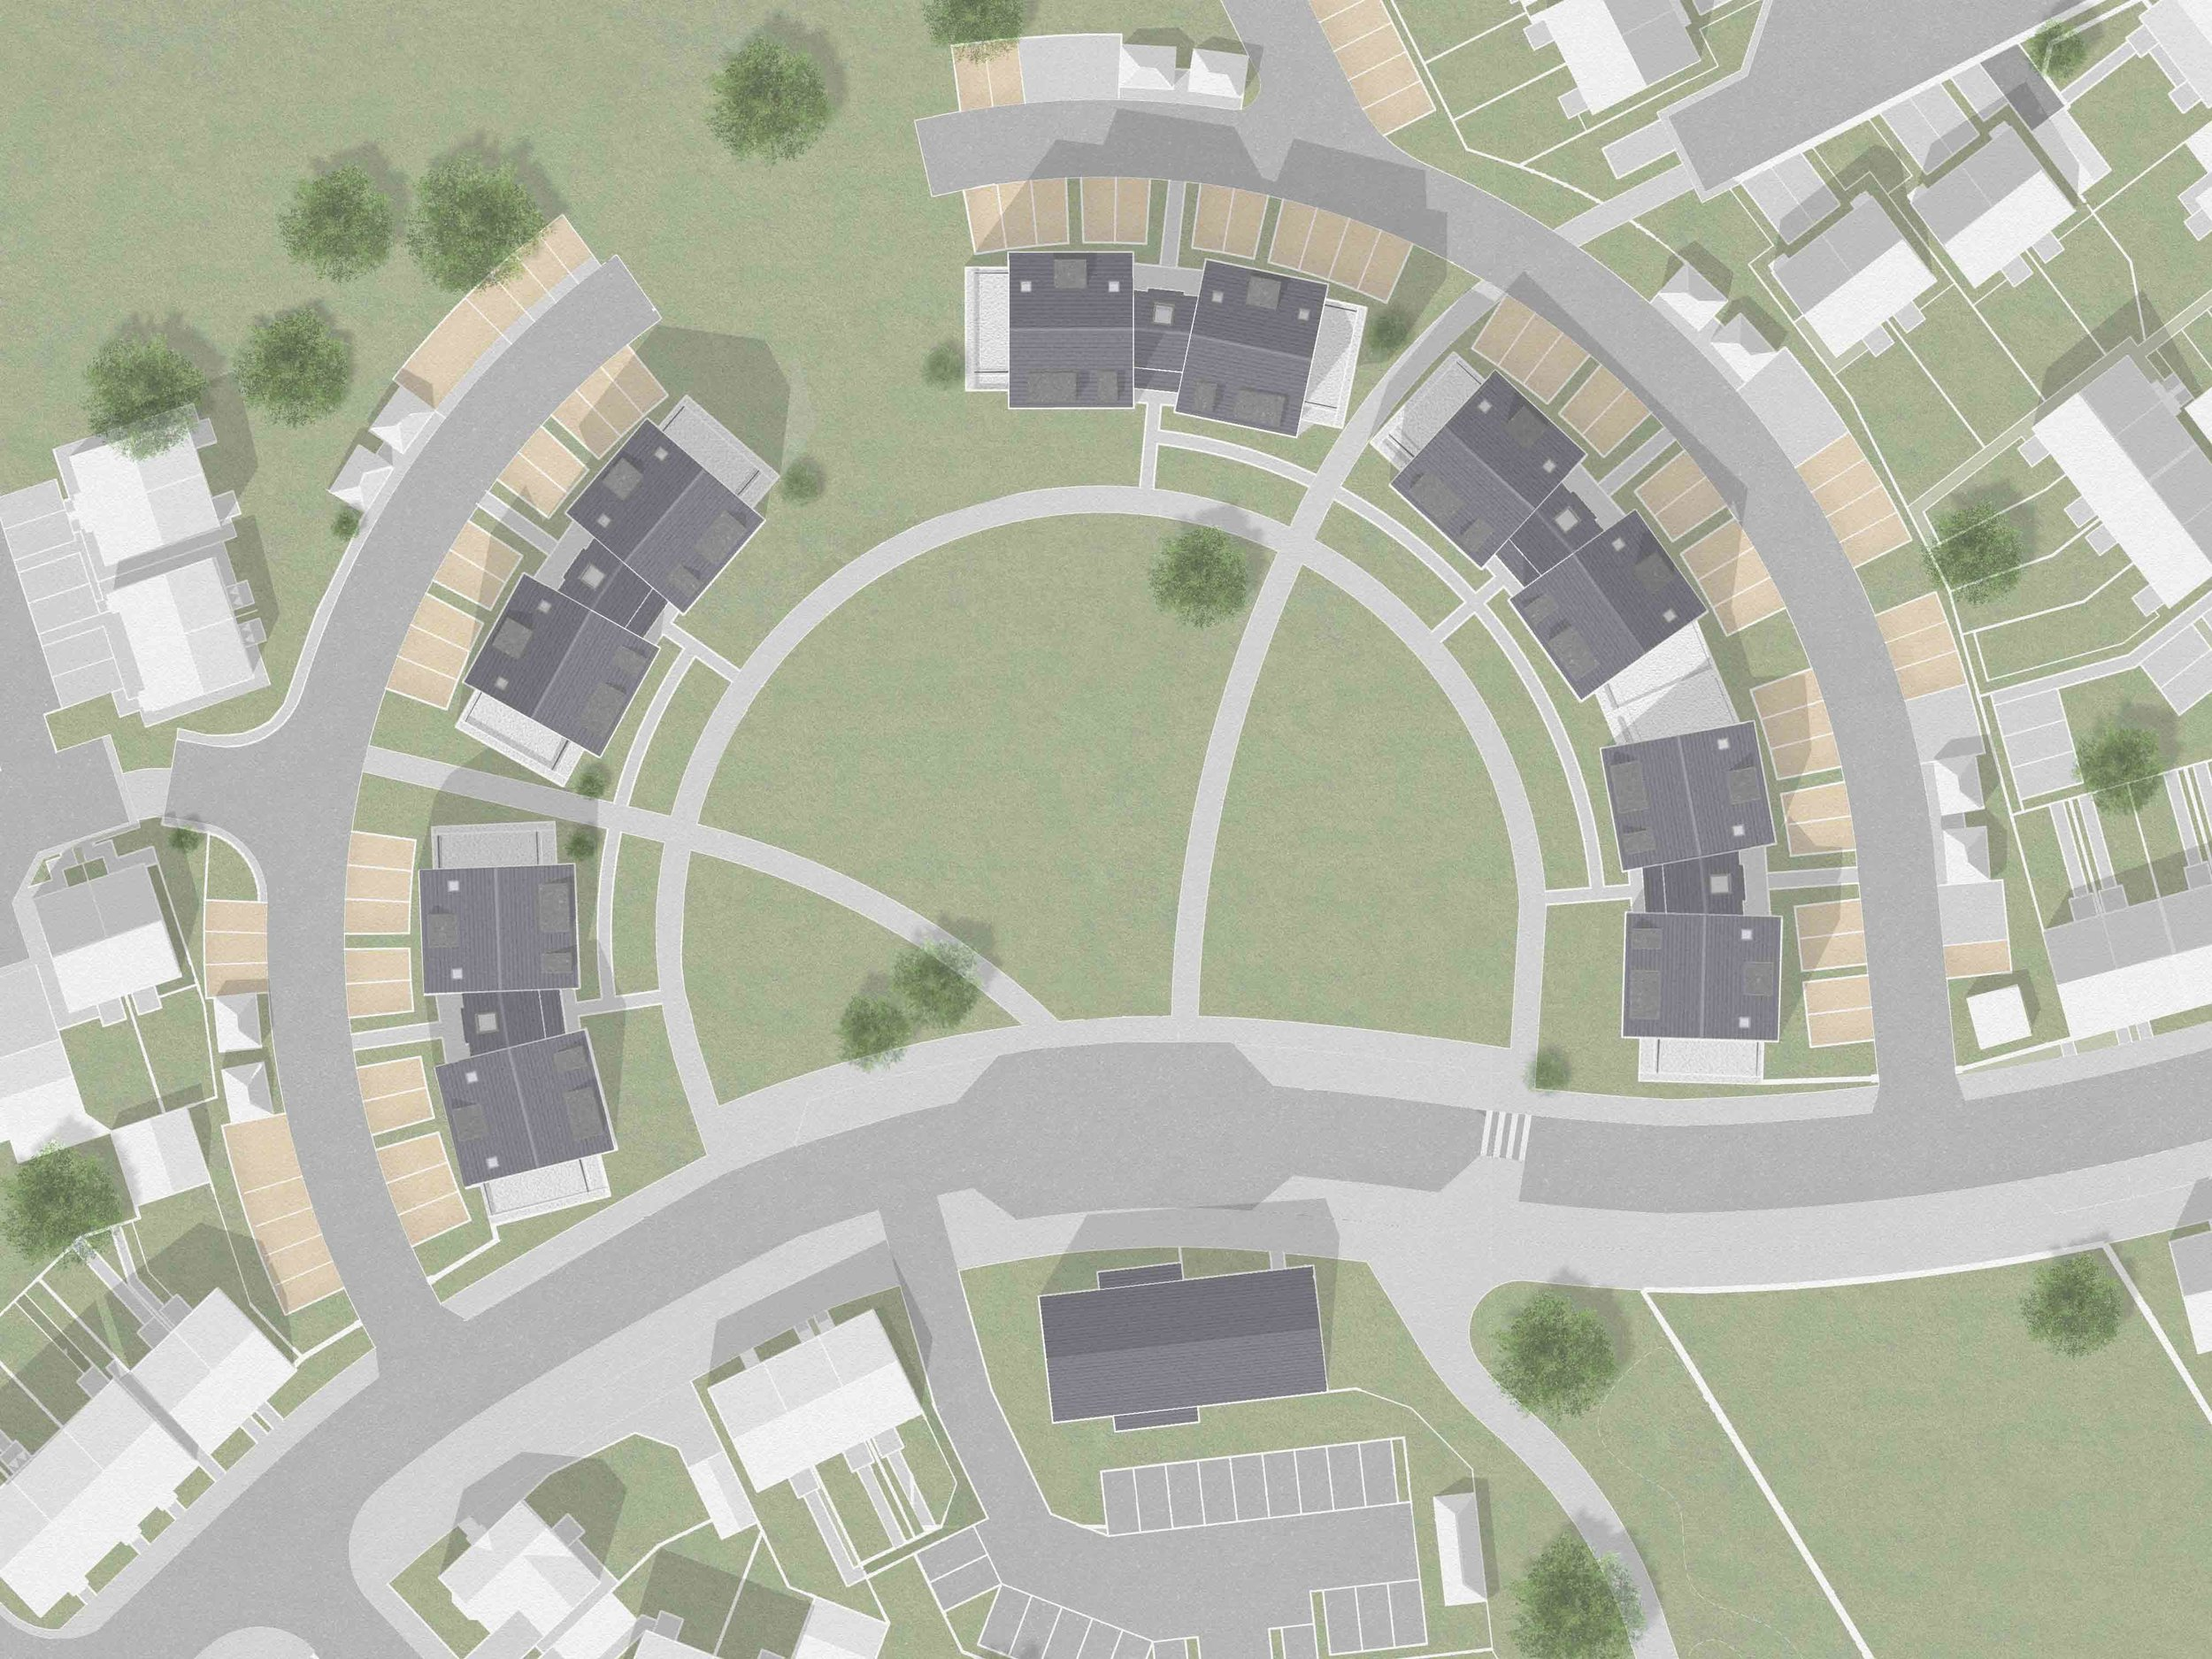 Persimmon-housing-development-york.jpg